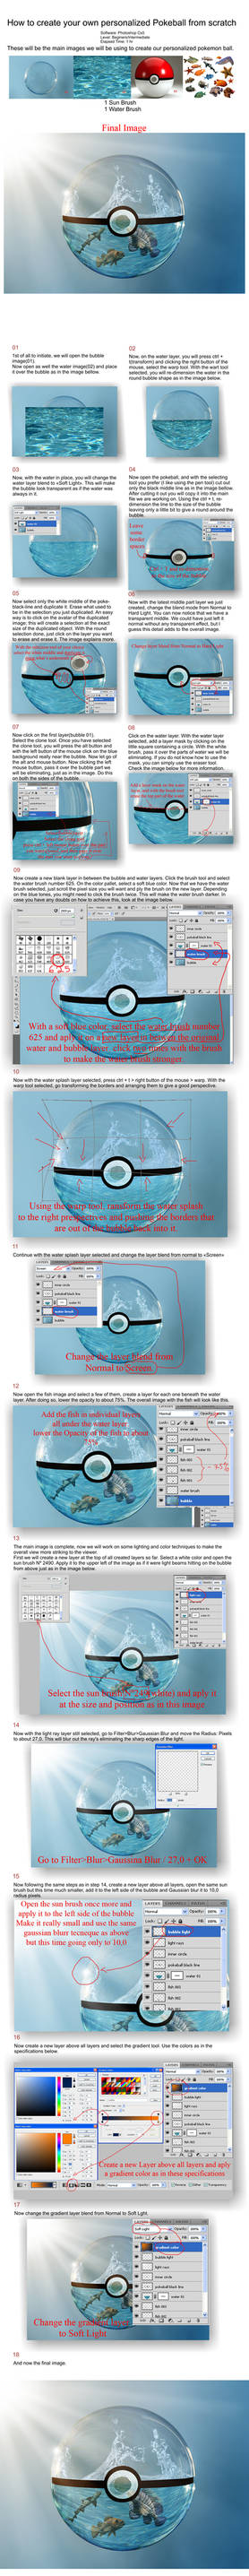 Pokemon Bubble Tutorial - Photoshop by PSHoudini